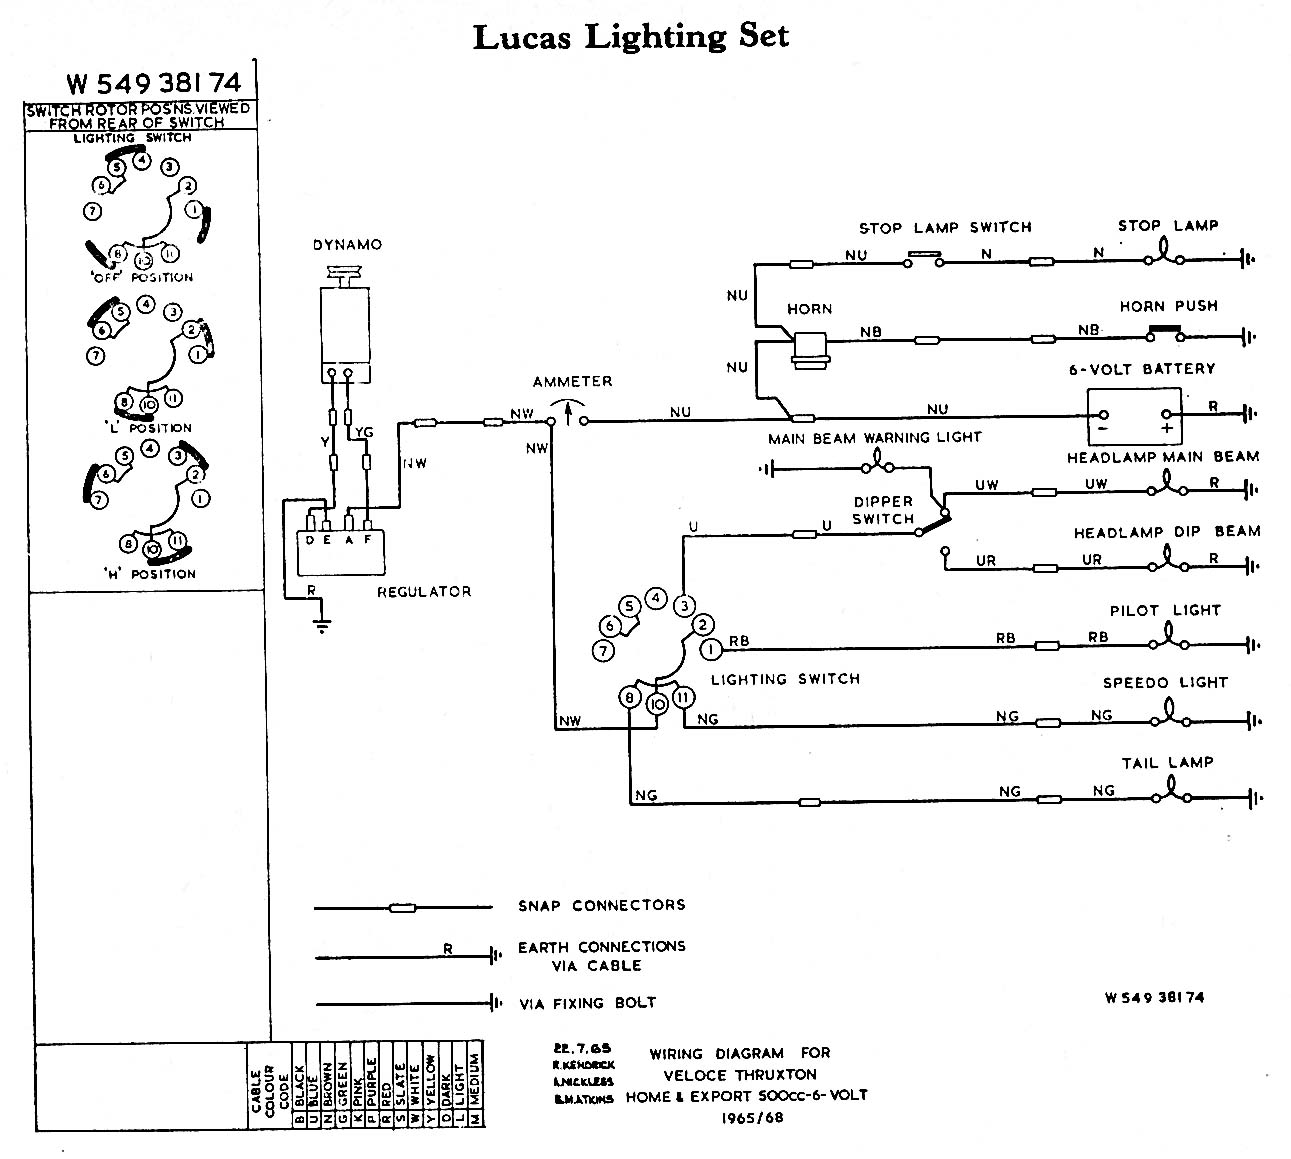 Velocette Owners Club Technical Information Wiring Diagrams 1950s Light Switch Diagram Lucas Lighting Set With Dynamo Avc